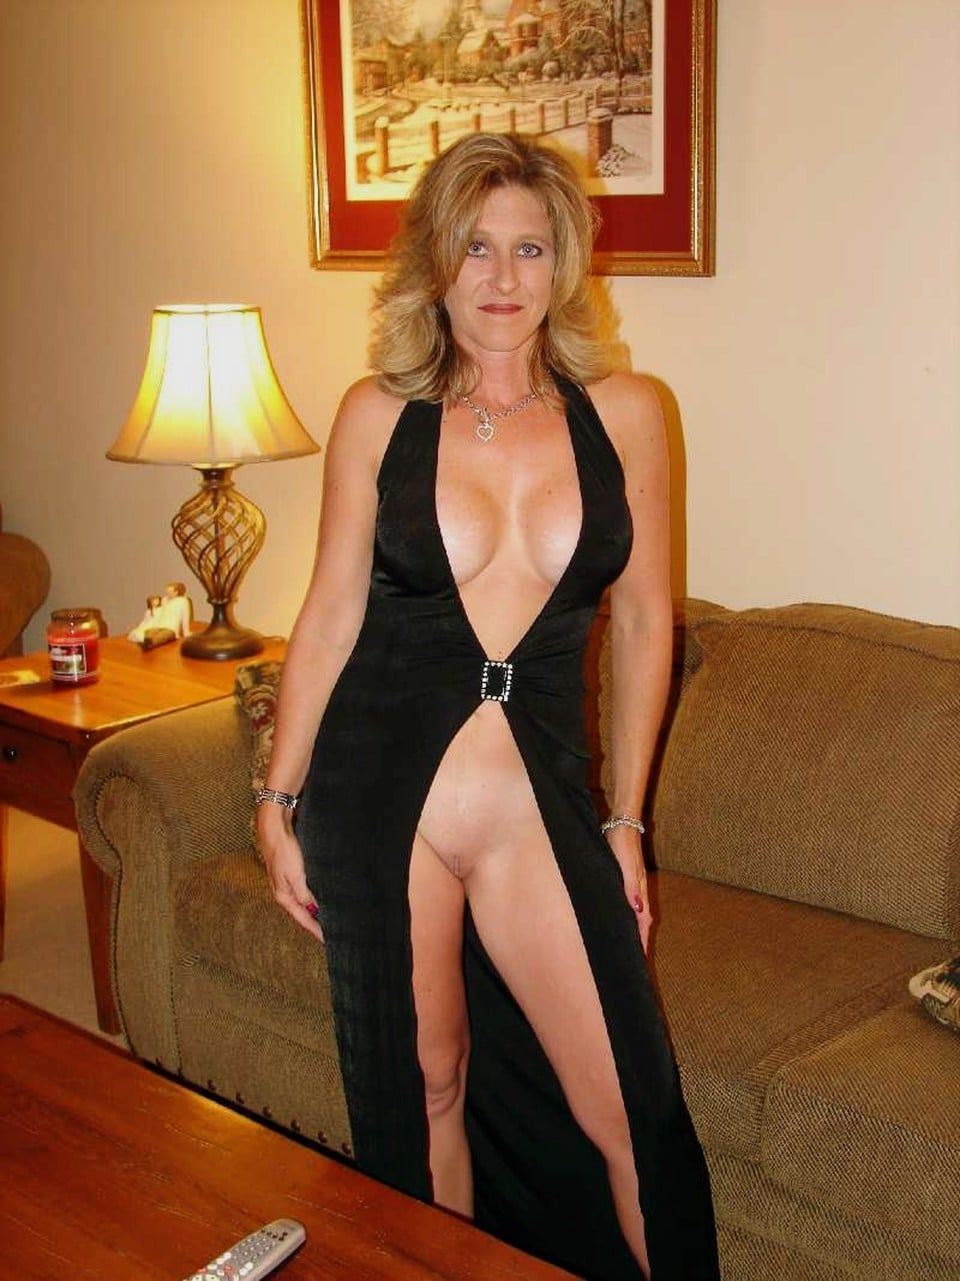 Slut wife in slutty dress